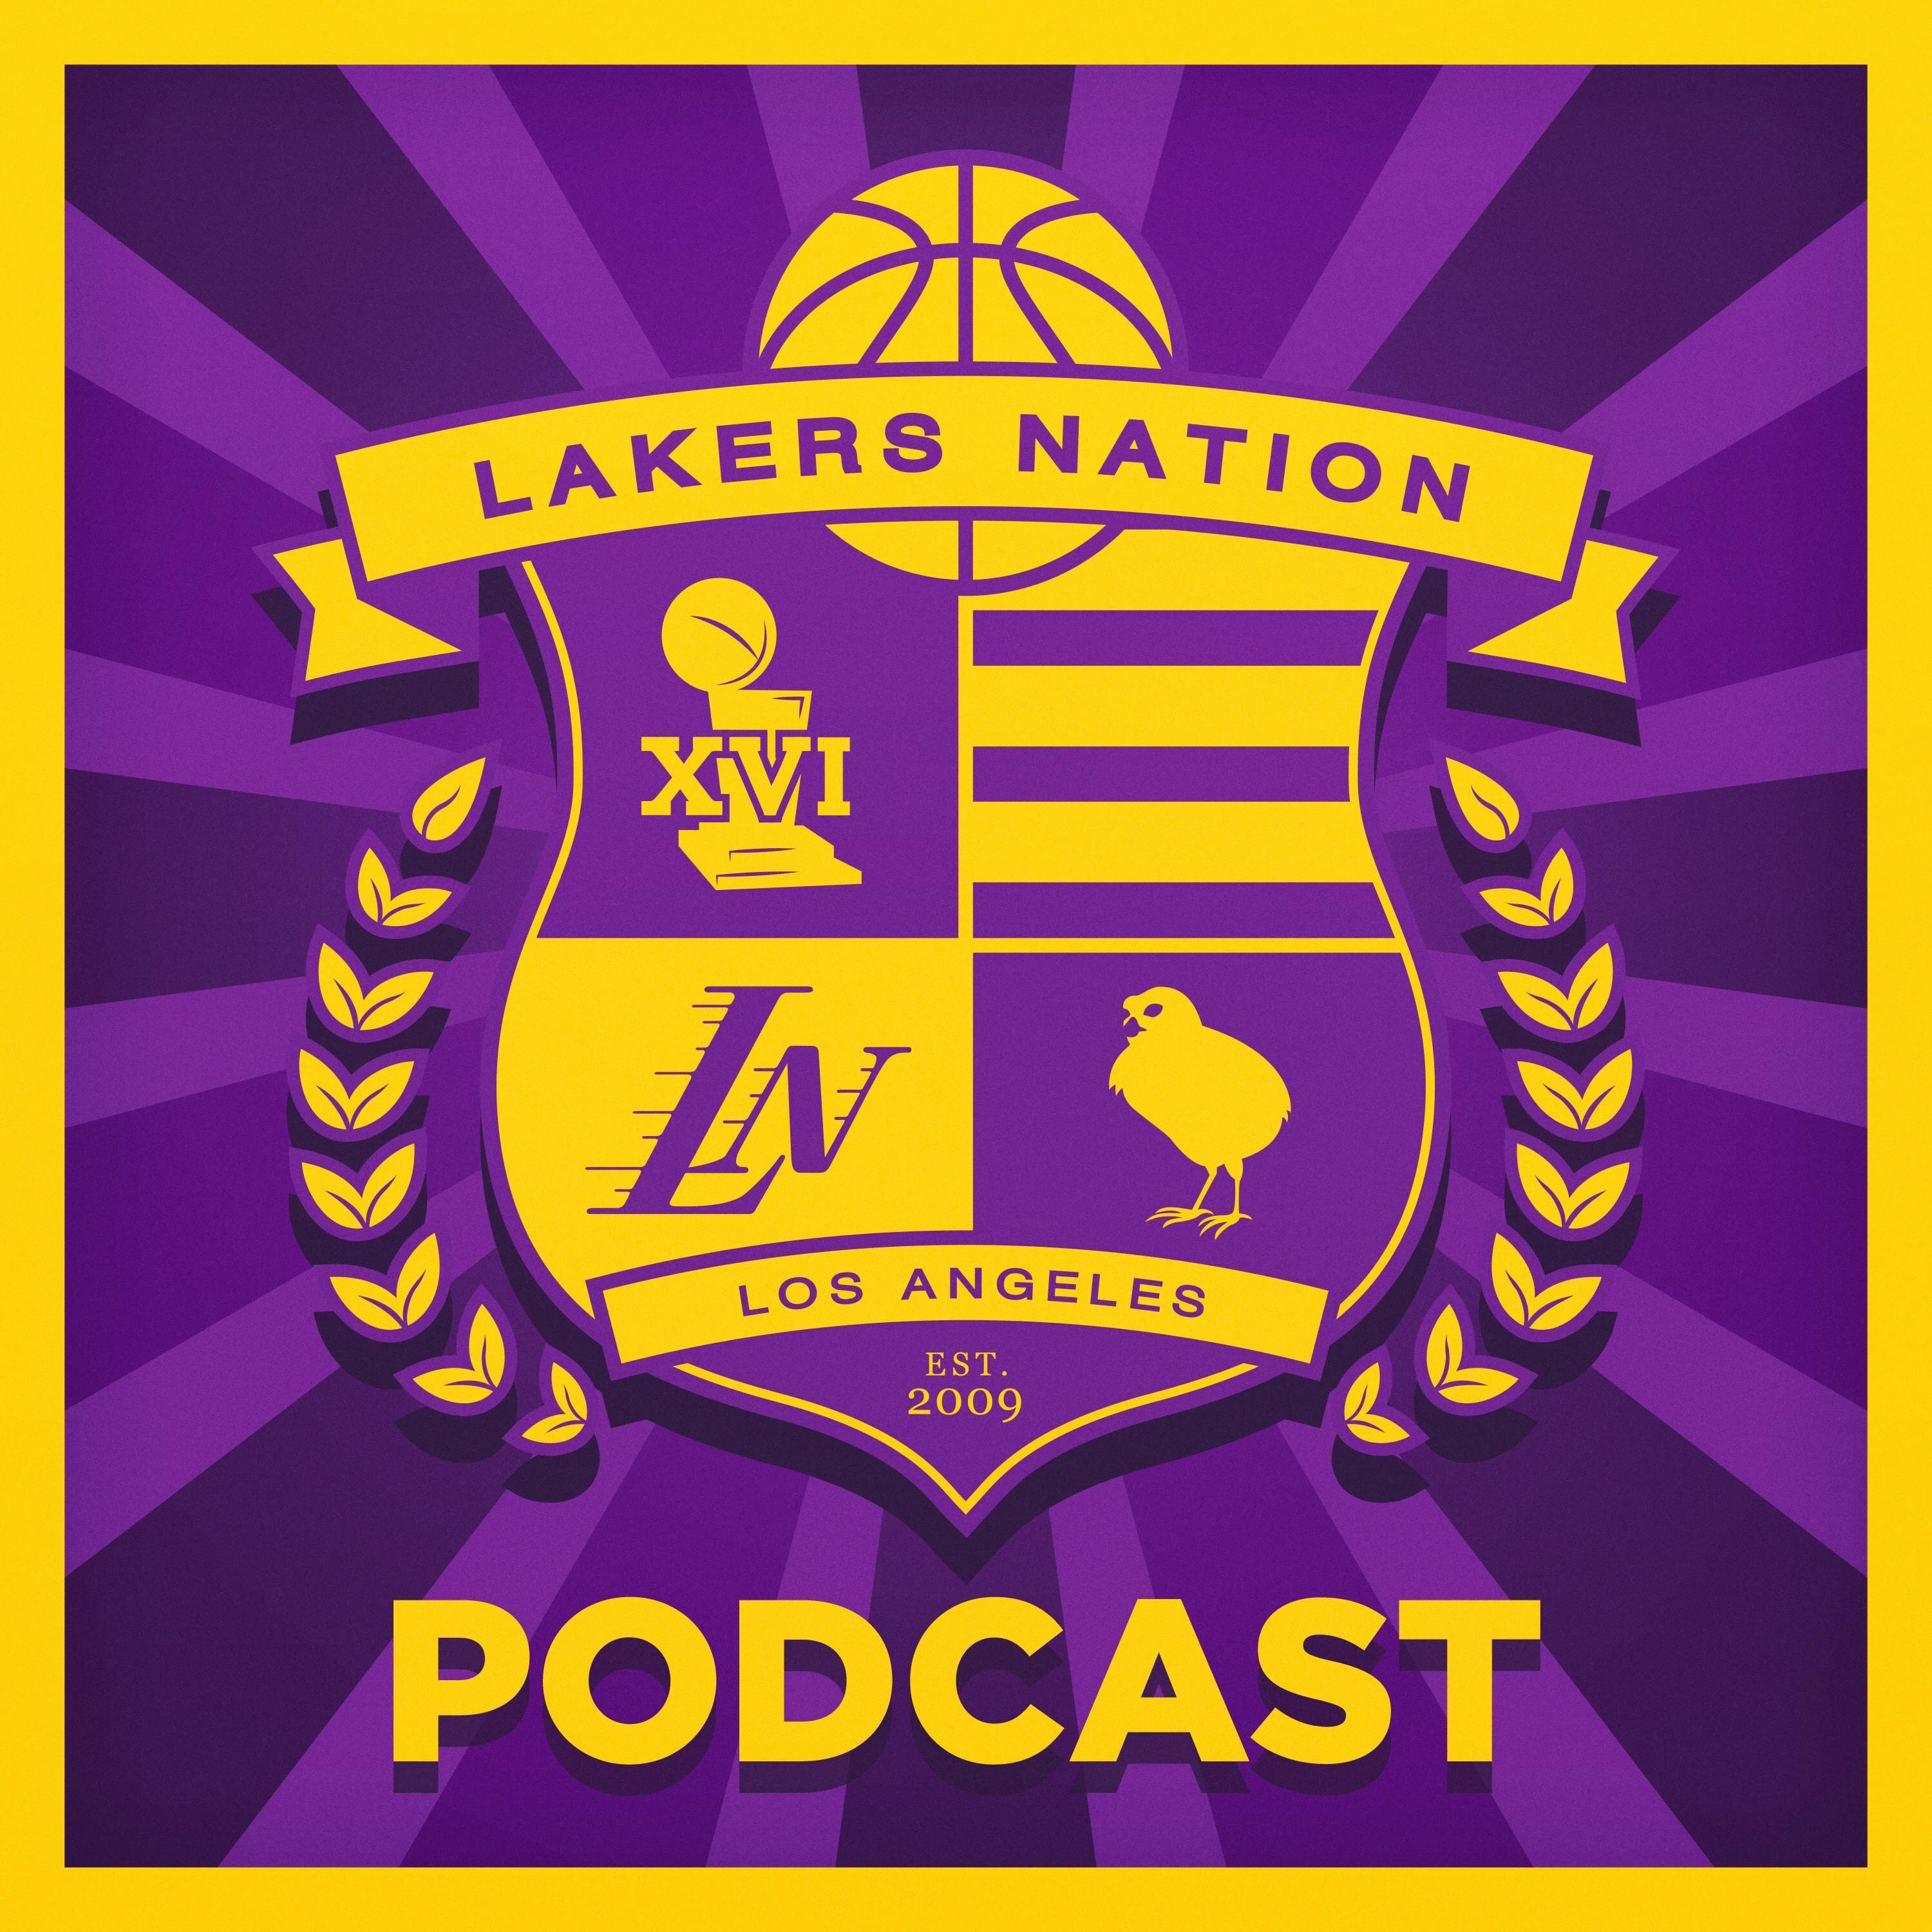 Lakers Nation Podcast show art